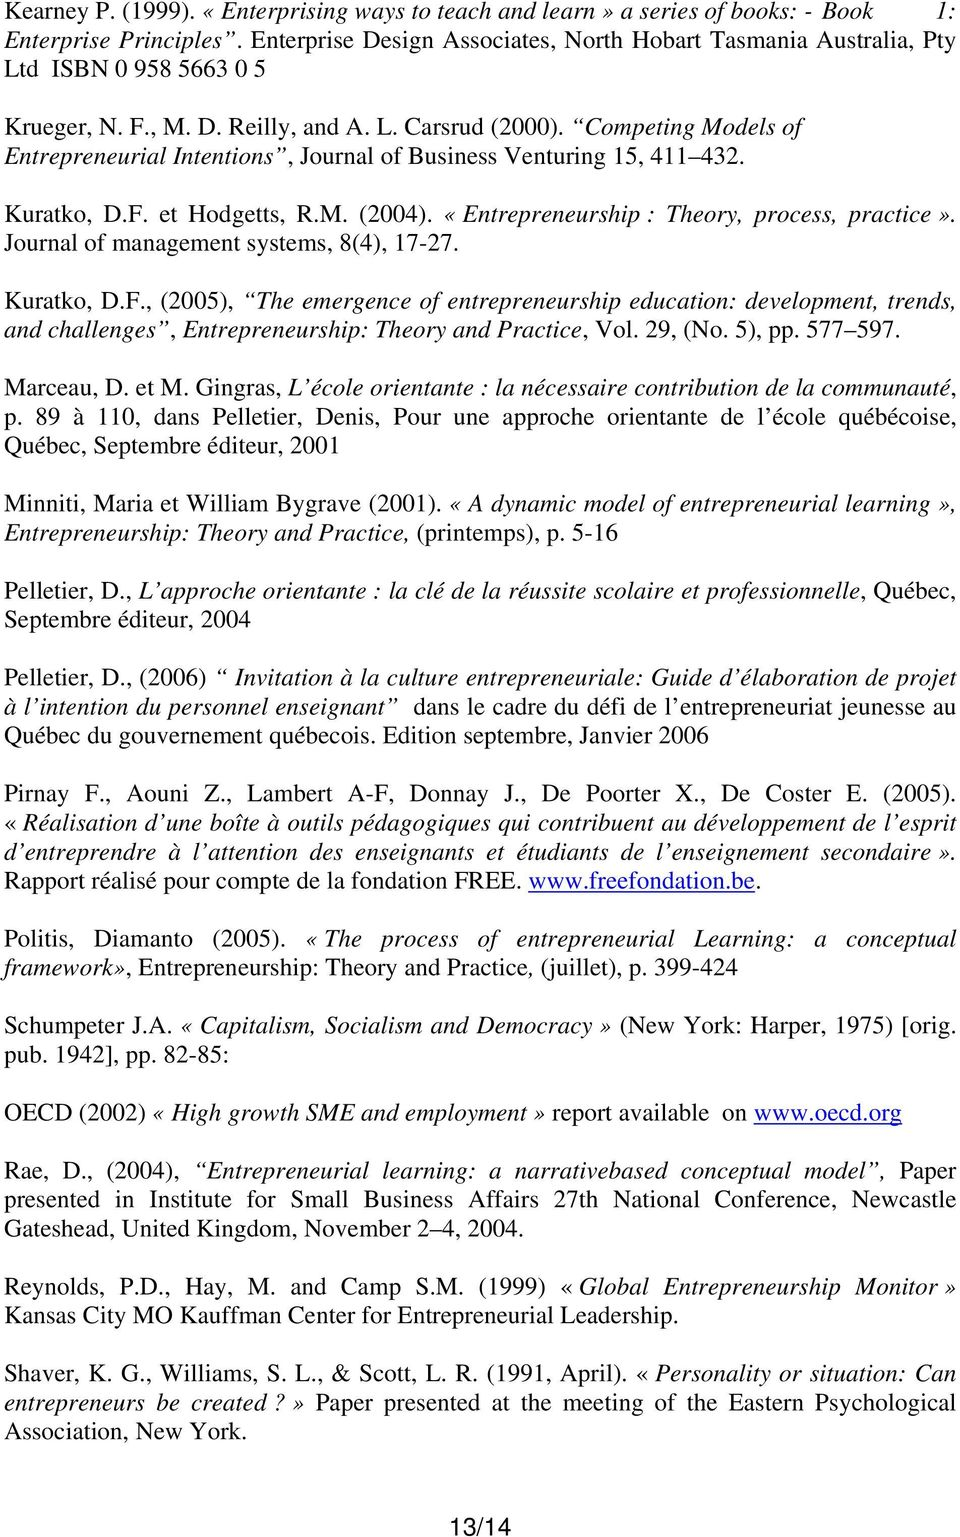 Competing Models of Entrepreneurial Intentions, Journal of Business Venturing 15, 411 432. Kuratko, D.F. et Hodgetts, R.M. (2004). «Entrepreneurship : Theory, process, practice».